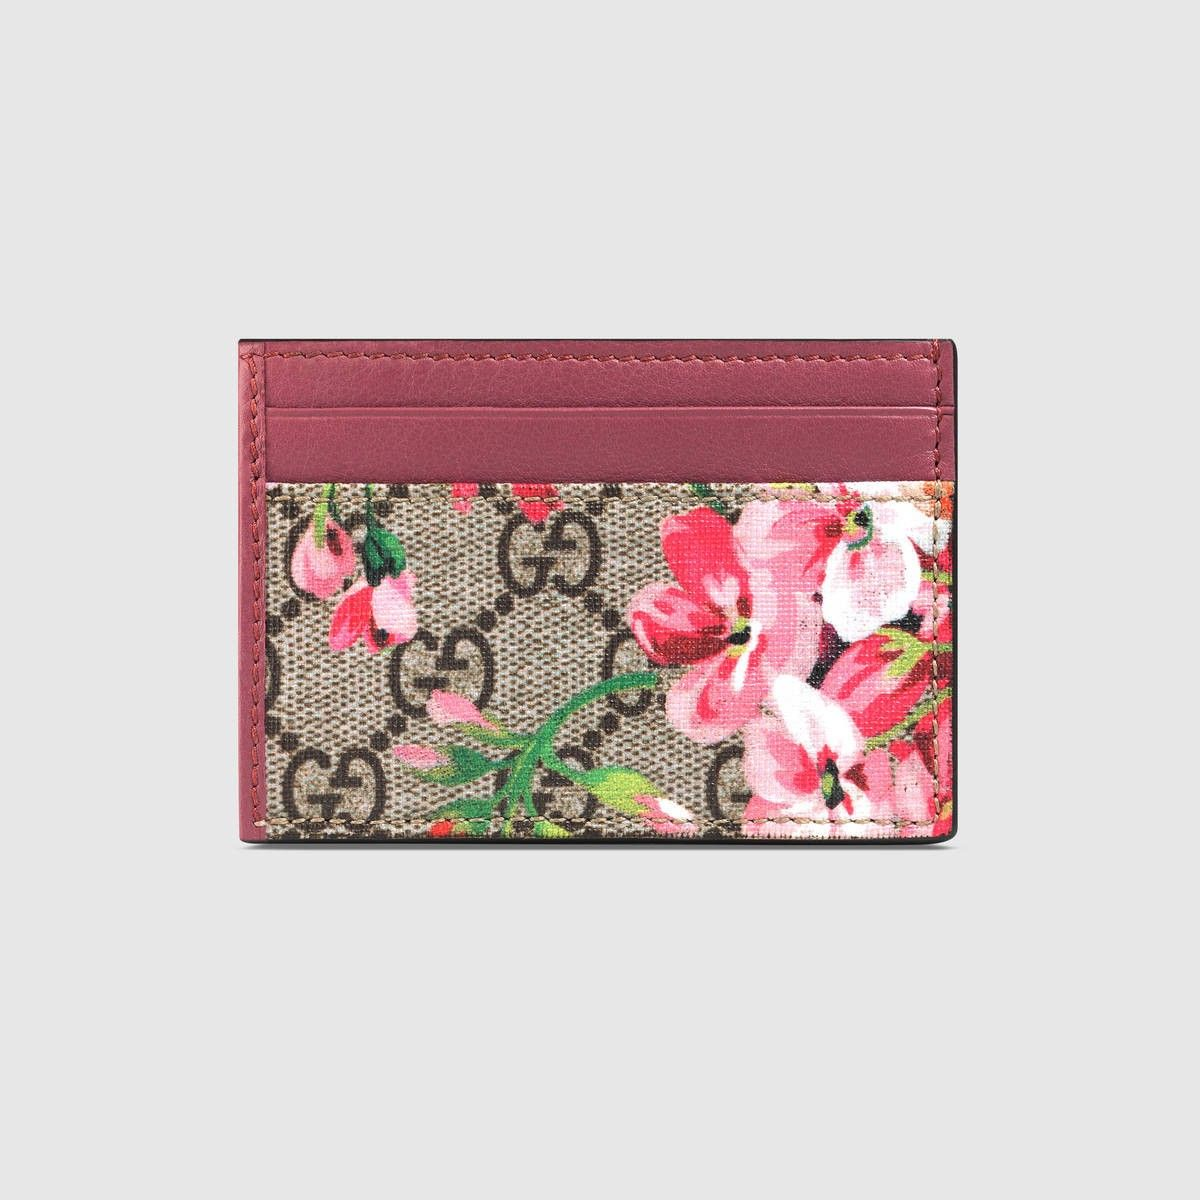 082137cbe4f GUCCI Gg Blooms Card Case - Gg Supreme Canvas Blooms.  gucci  bags  leather   canvas